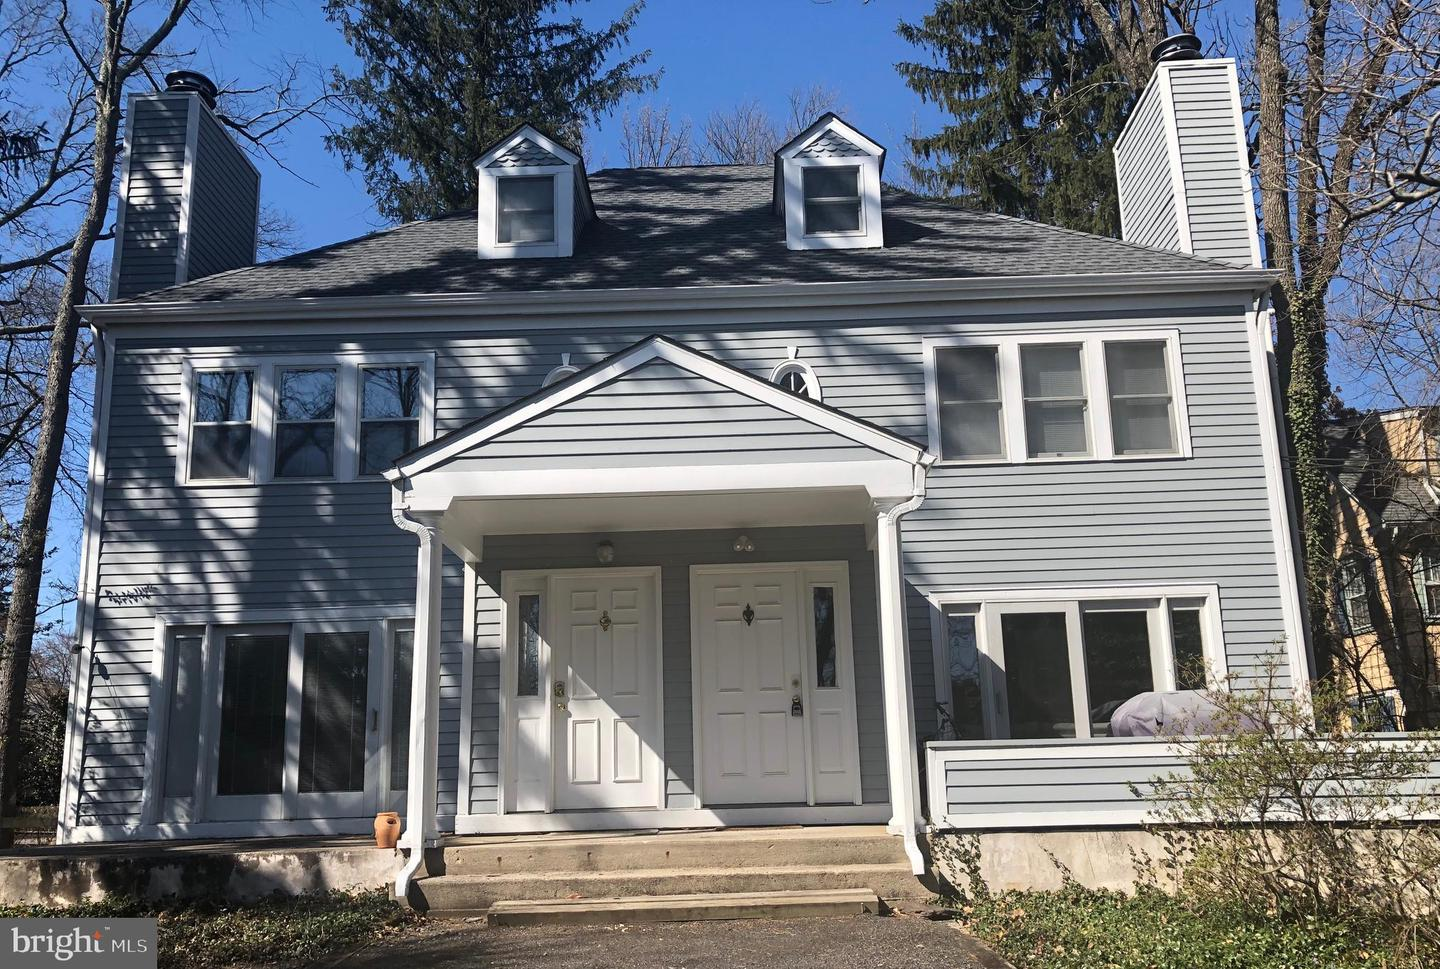 Property for Rent at 305 NASSAU Street Princeton, New Jersey 08540 United States